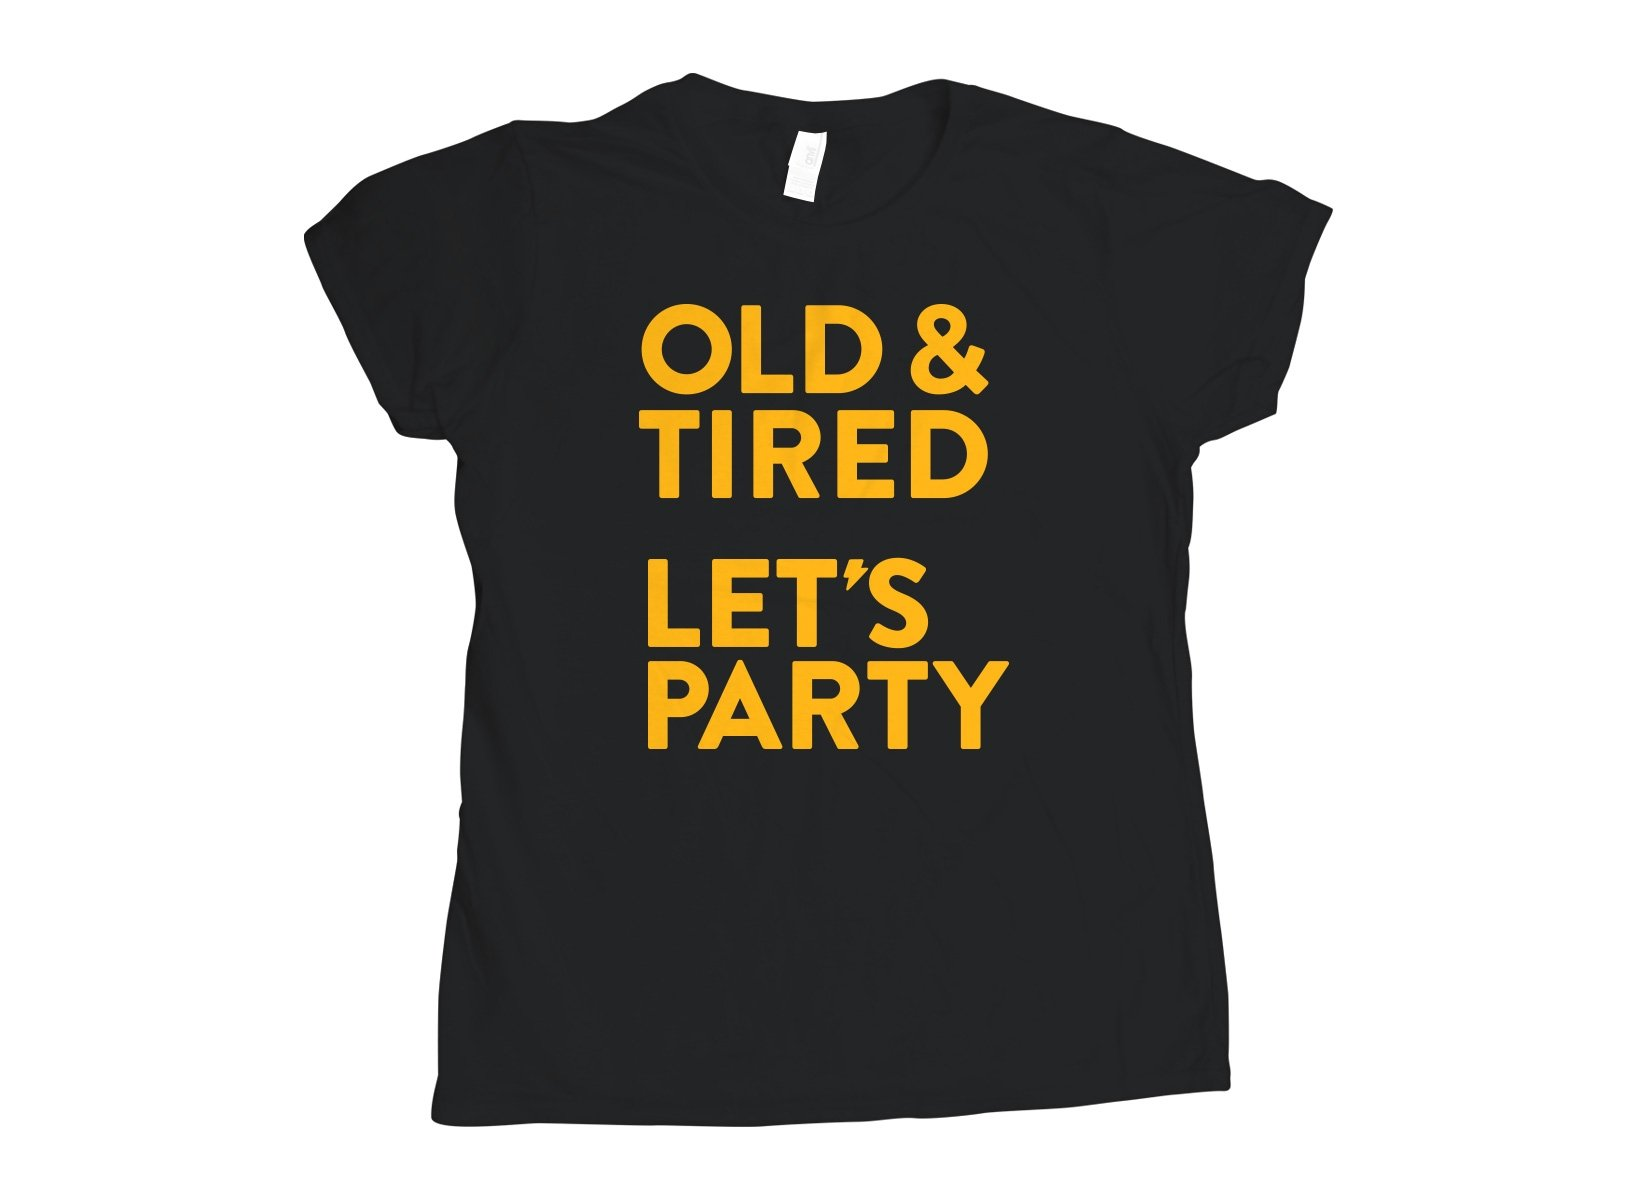 Old & Tired Let's Party on Womens T-Shirt